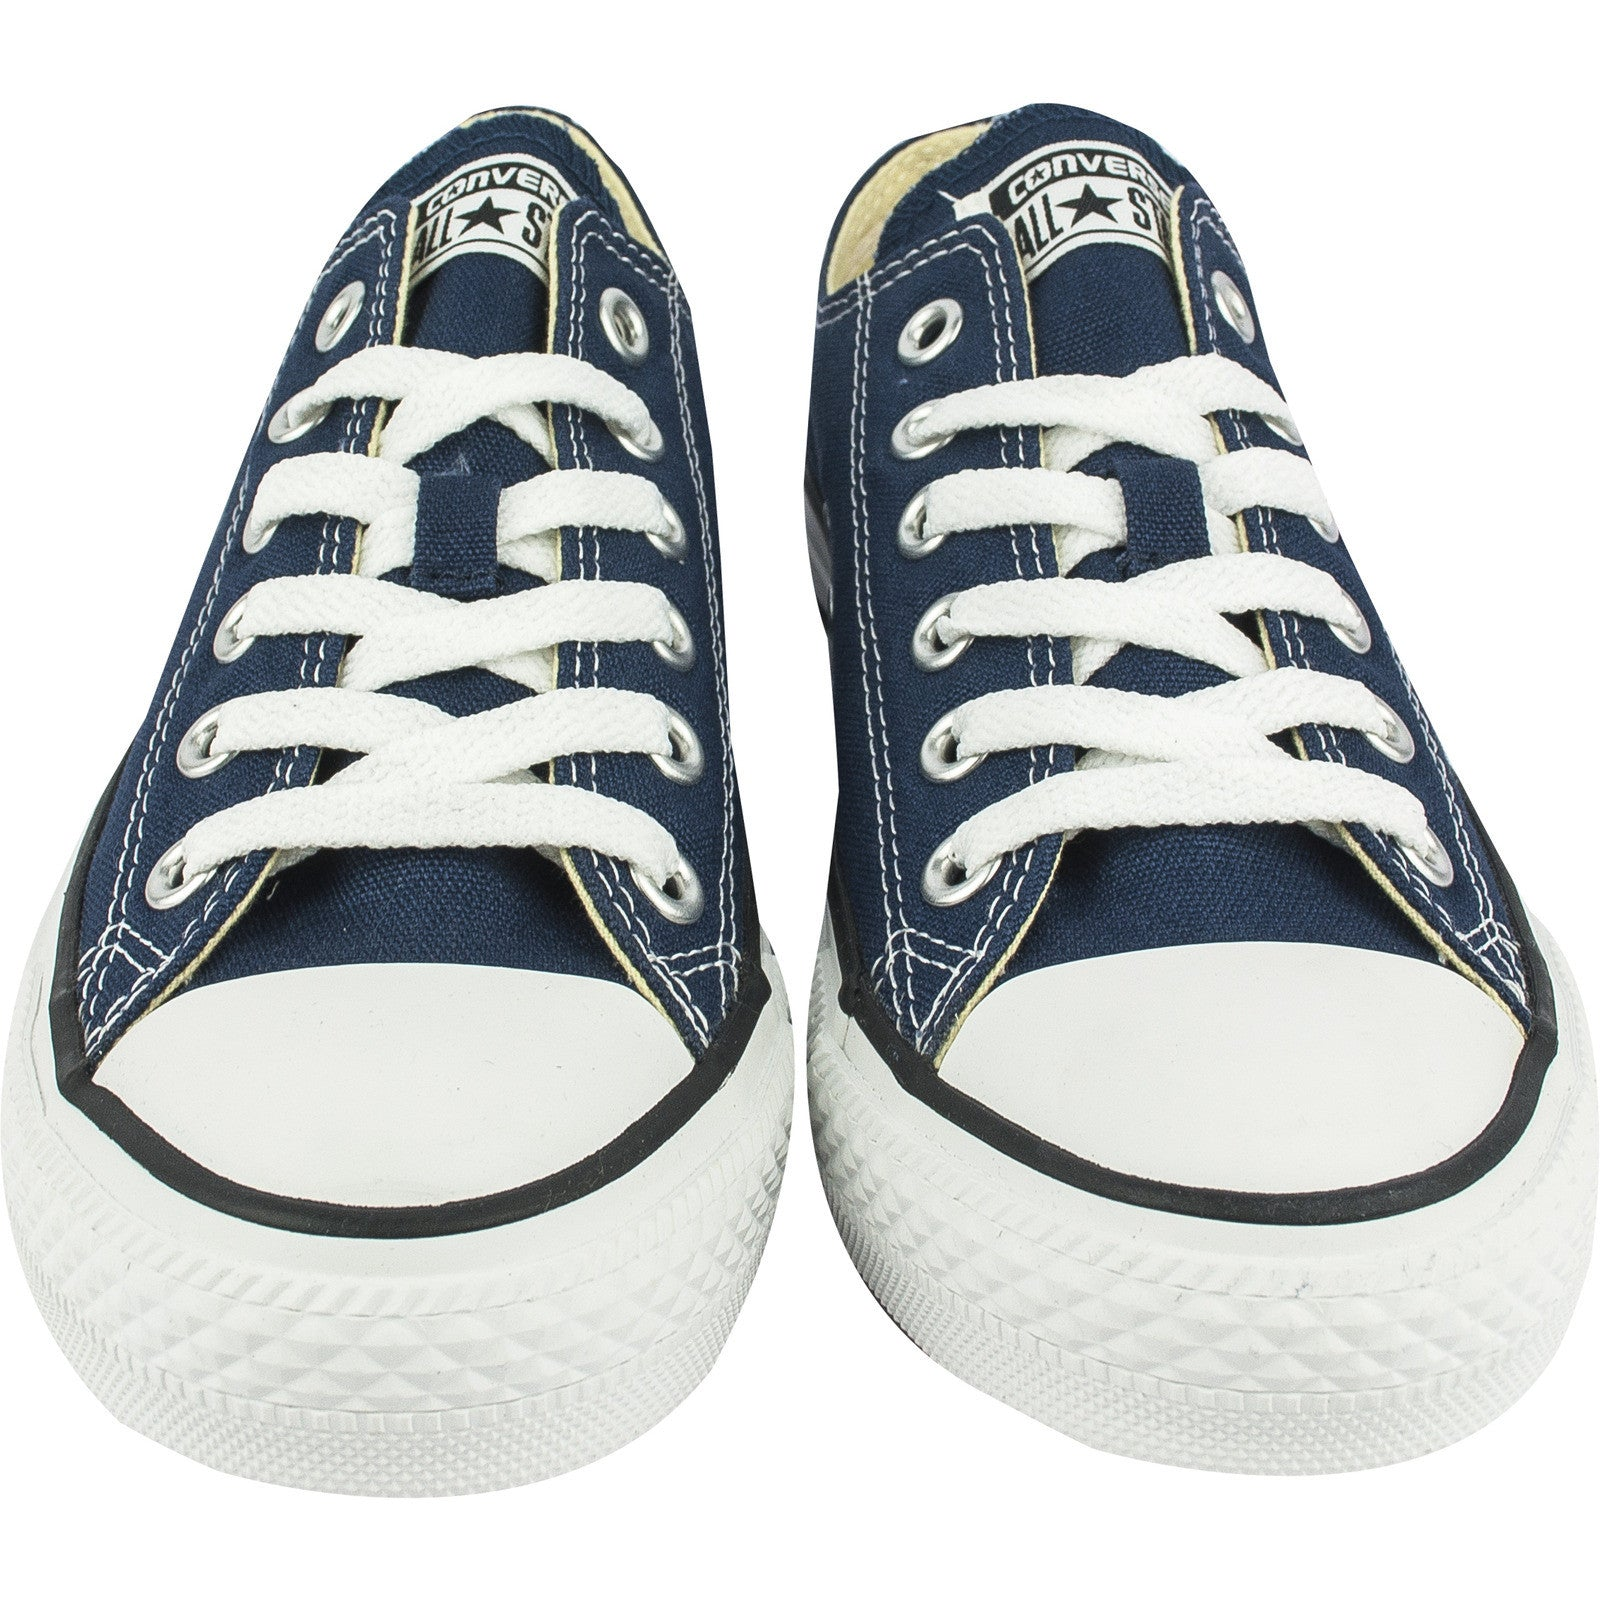 Converse Chuck Taylor All Star Low M9697C